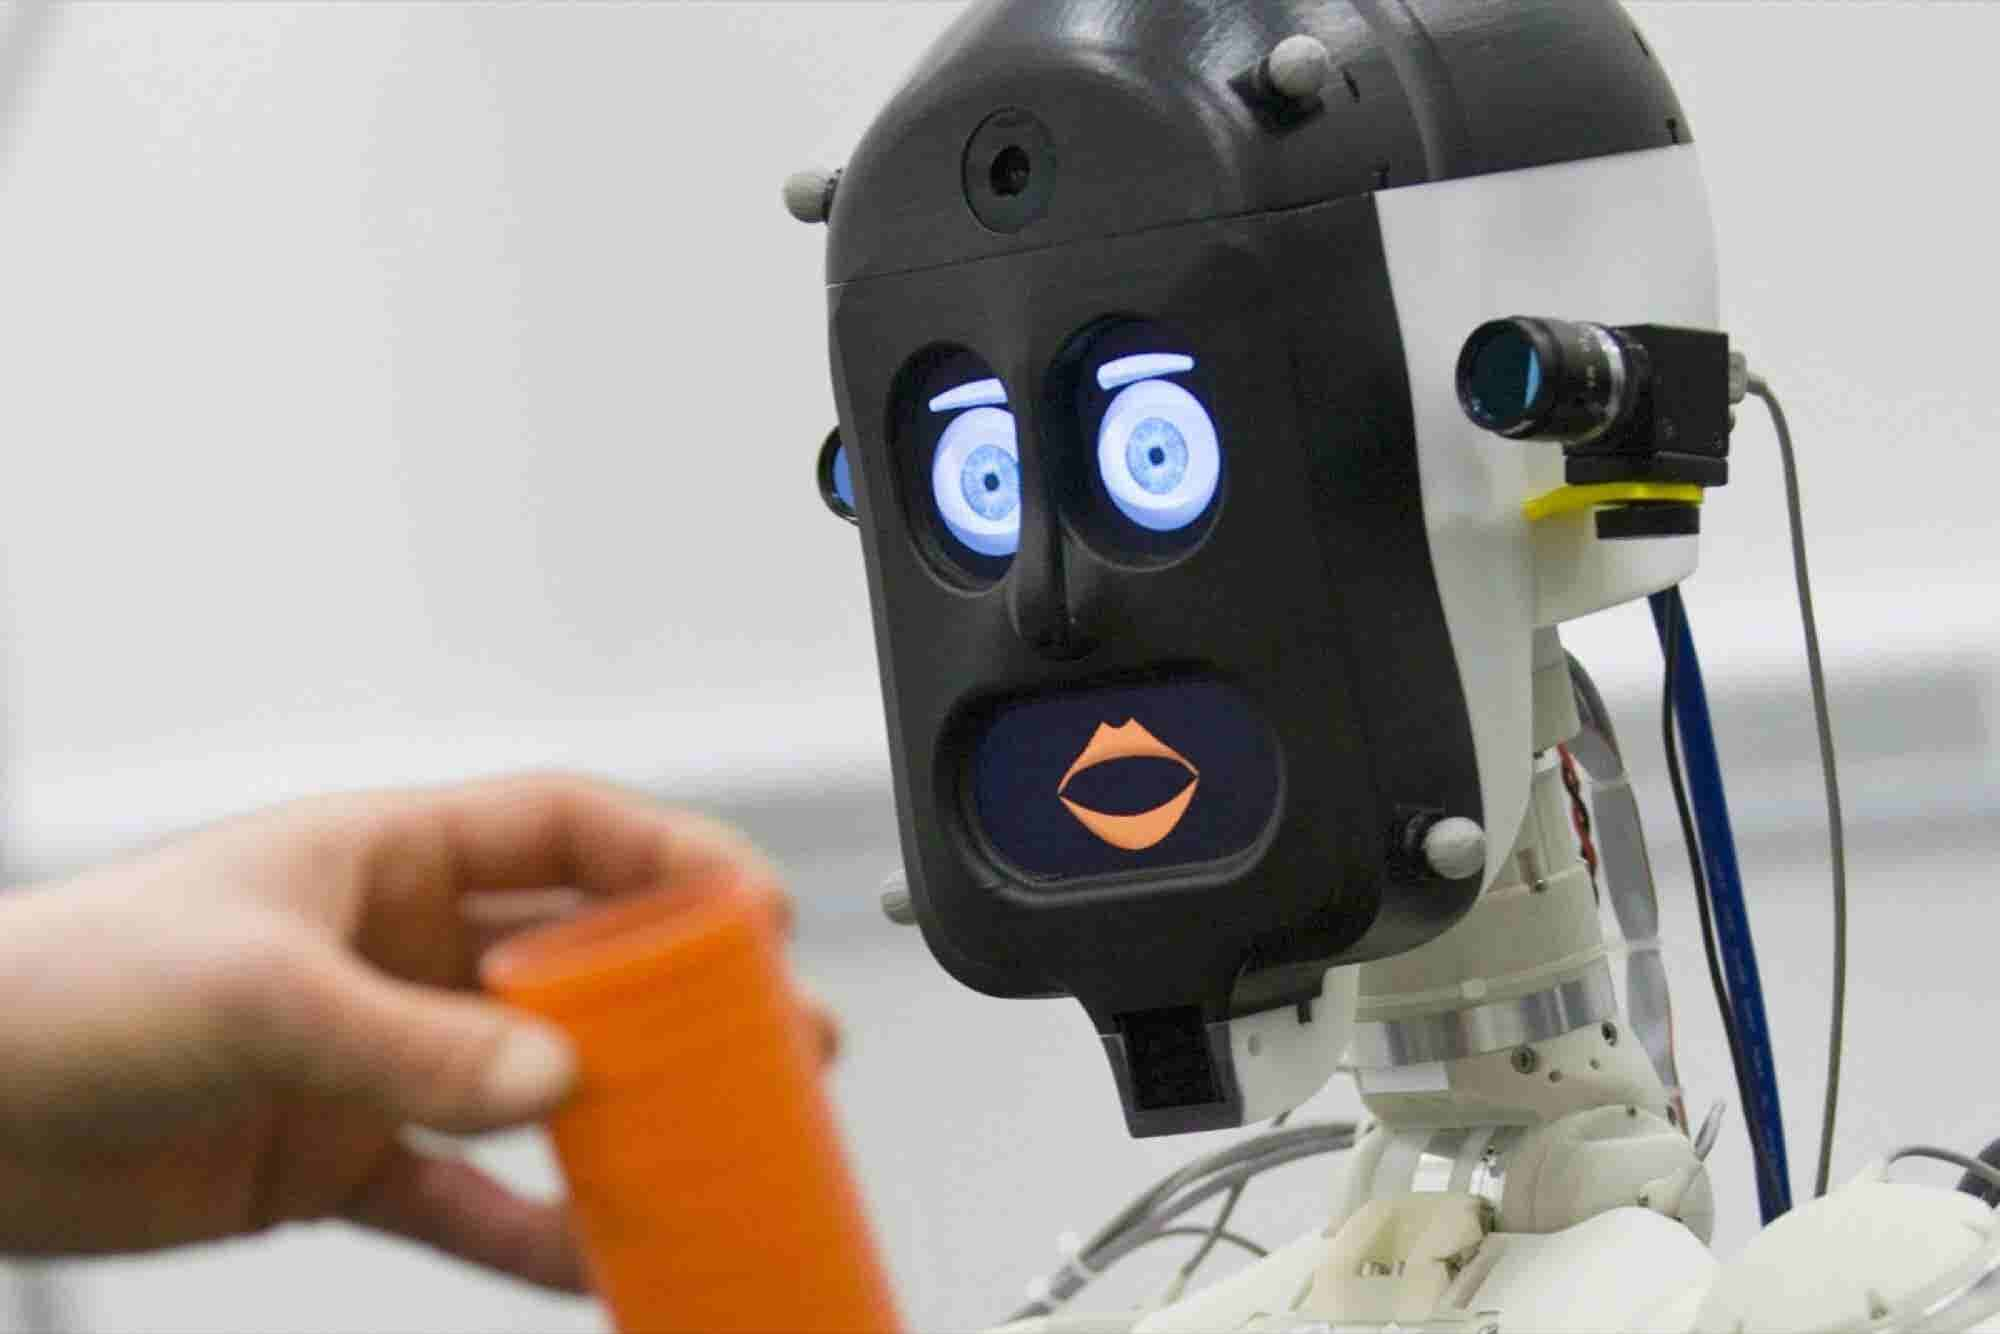 People Will Lie to Robots to Avoid Hurting Their Feelings